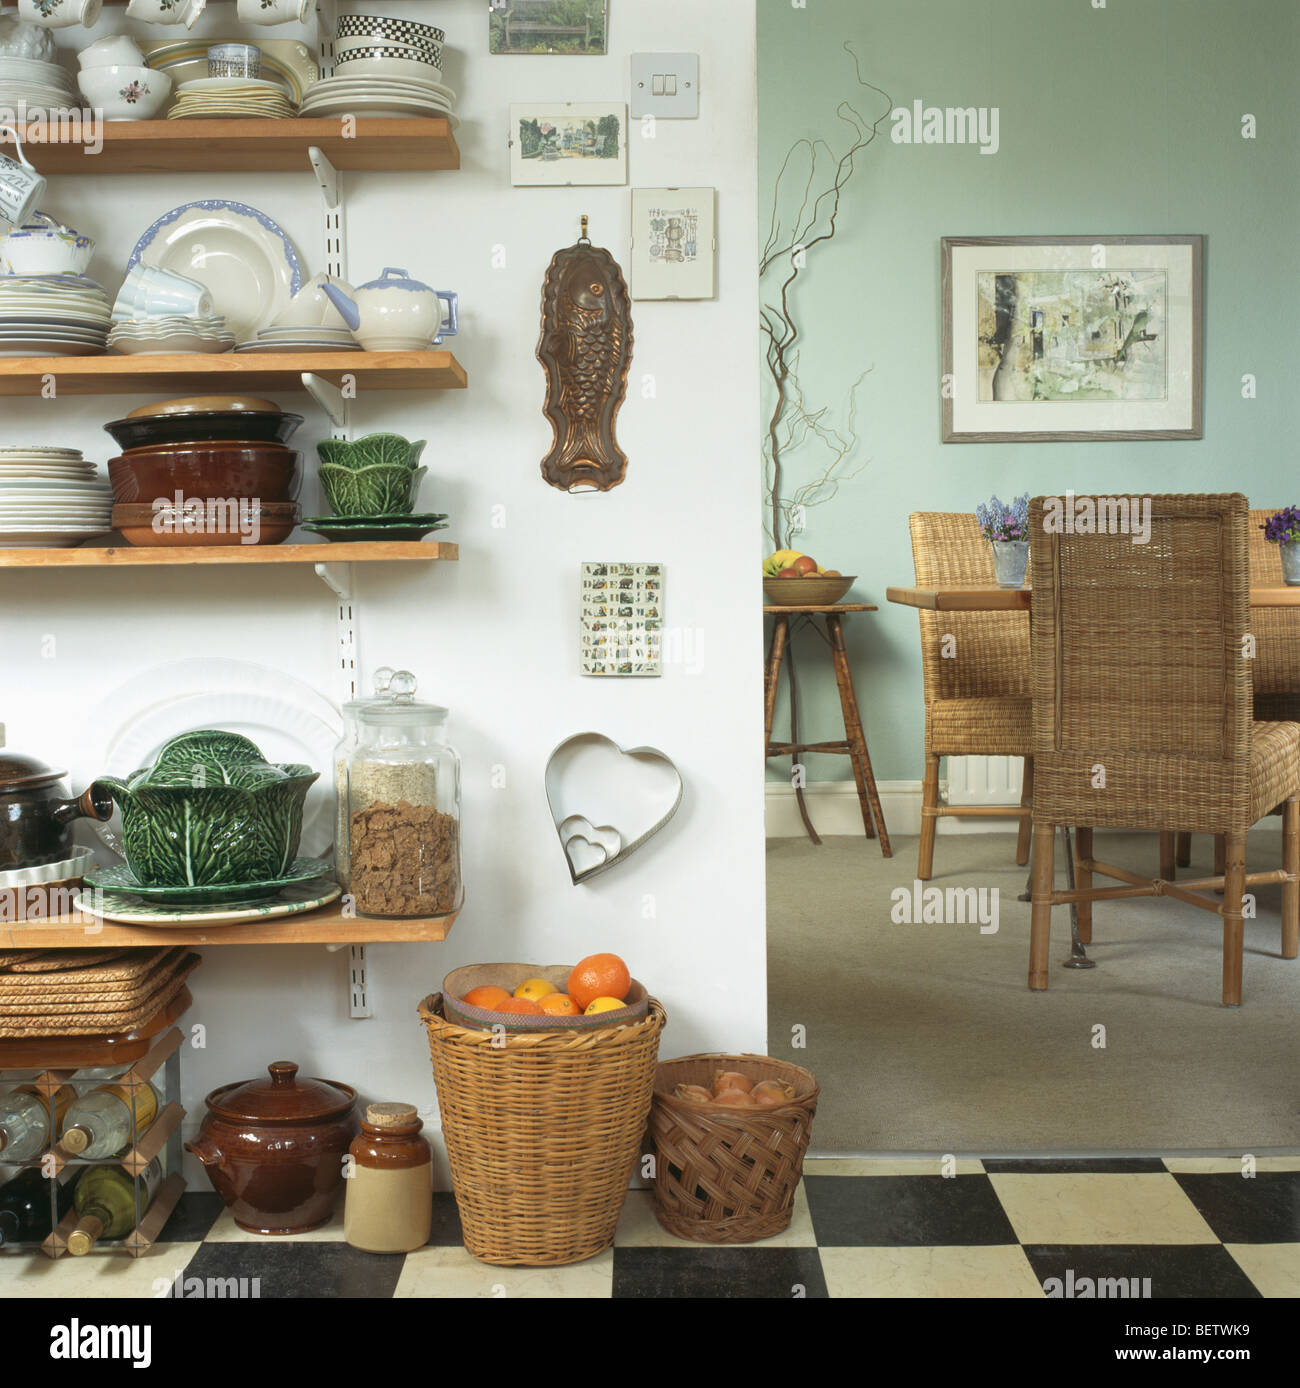 Crockery On Wooden Kitchen Shelves Beside Doorway To Dining Room With Tall Back Wicker Chairs